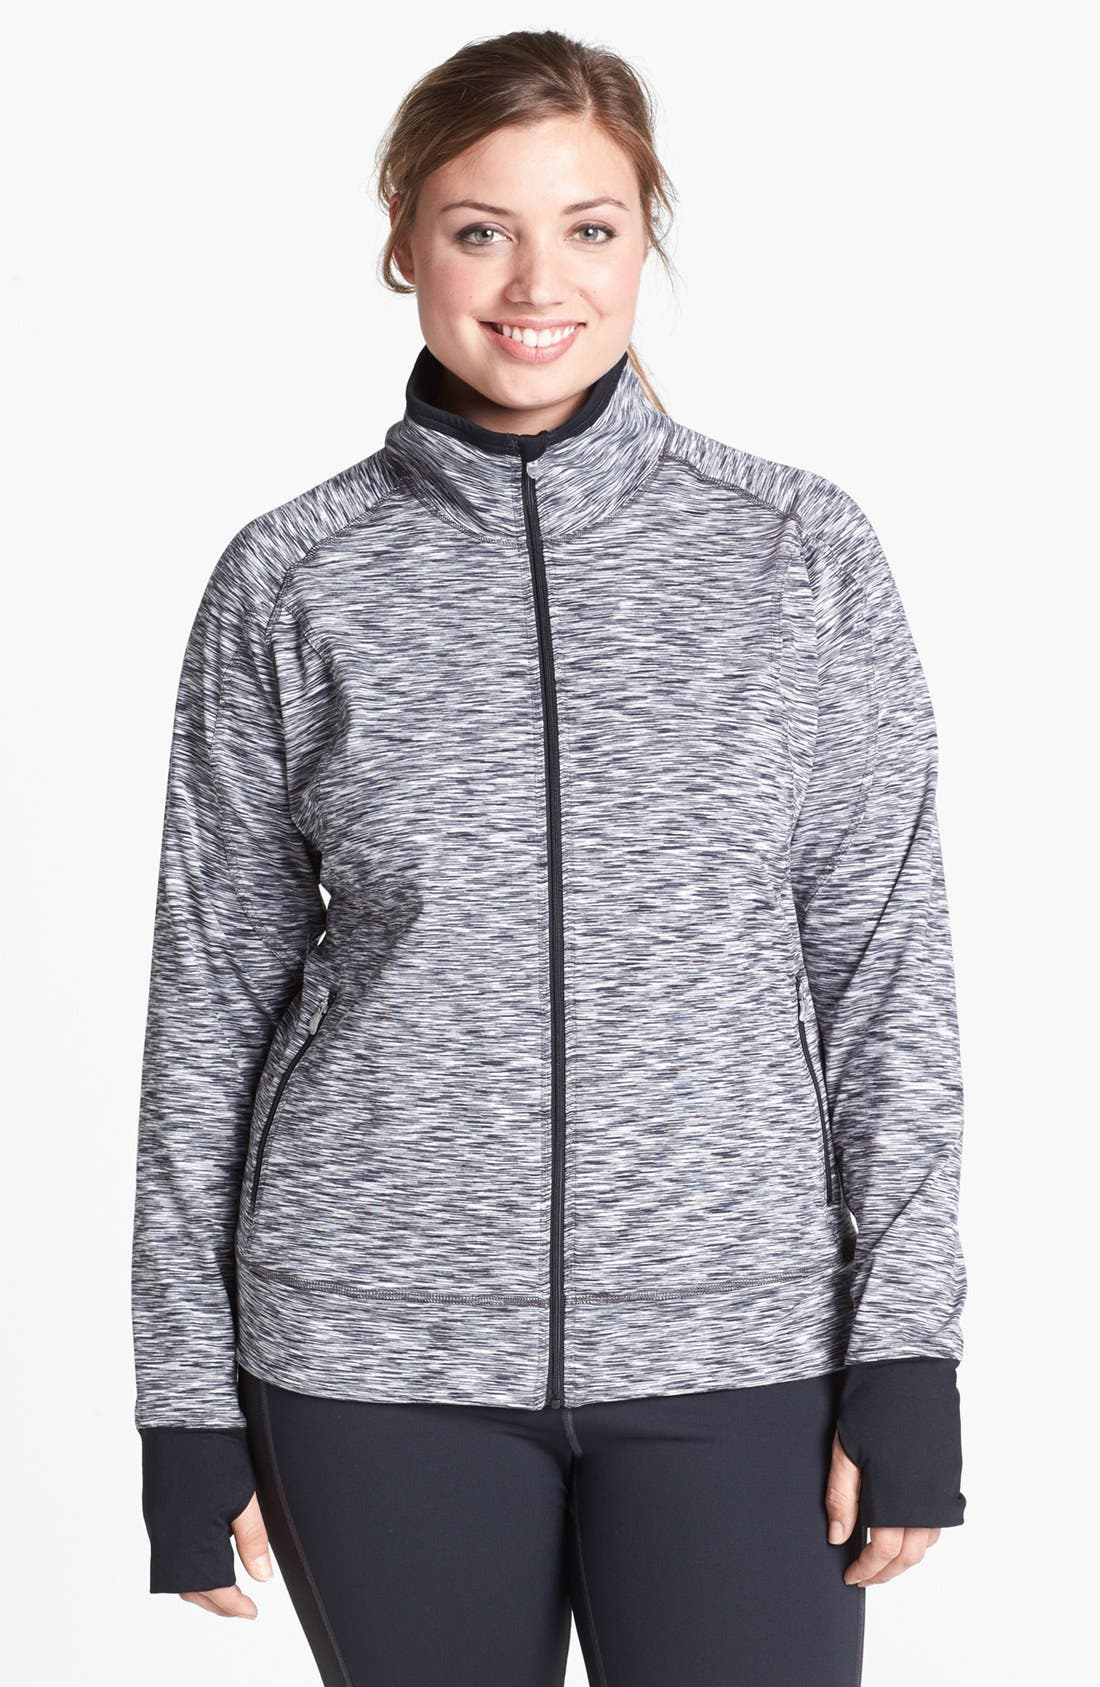 Alternate Image 1 Selected - Moving Comfort 'Foxie' Full Zip Jacket (Plus Size)